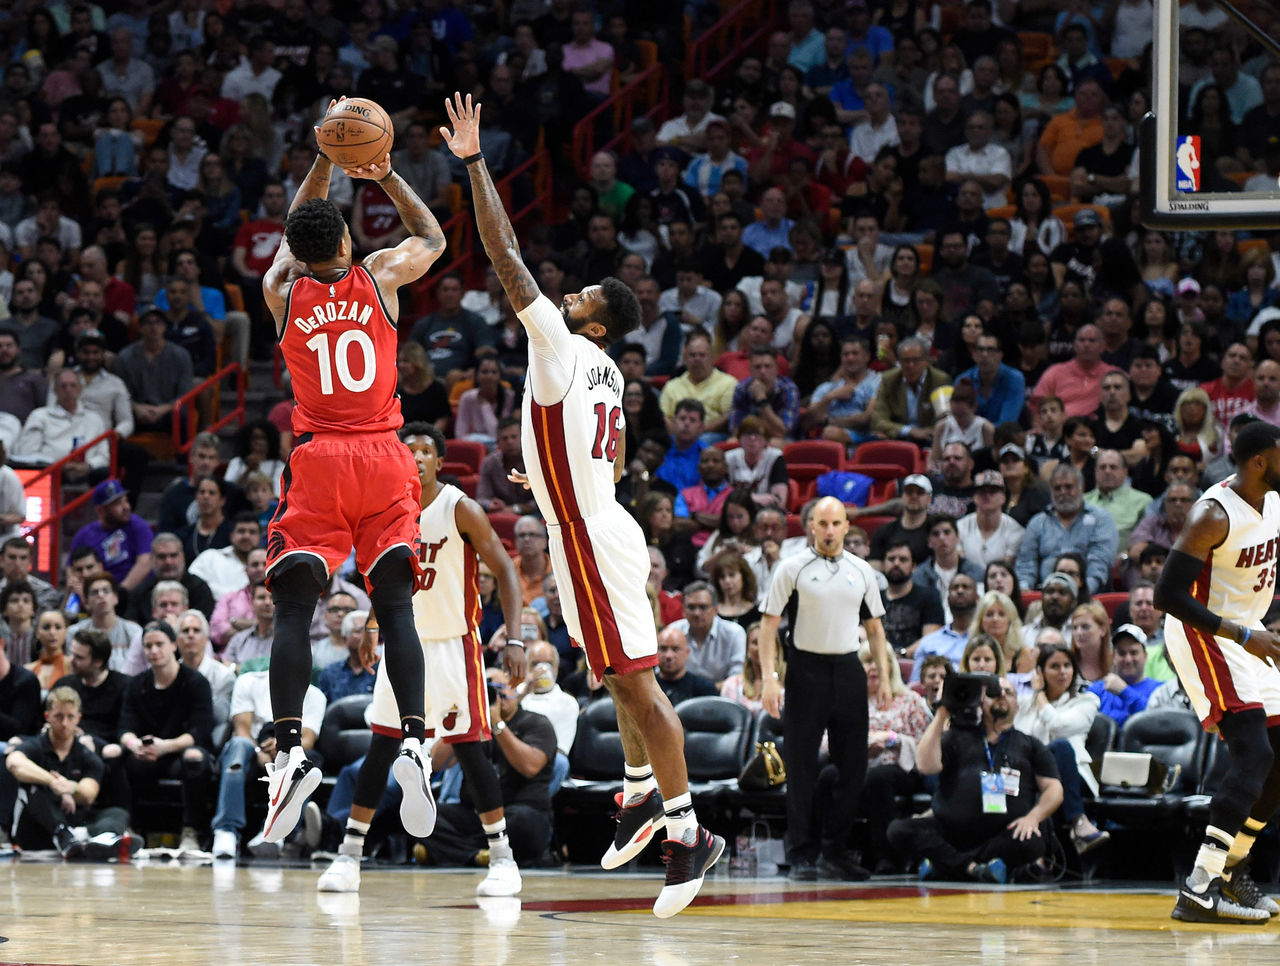 Cropped 2017 03 24t024229z 1092347981 nocid rtrmadp 3 nba toronto raptors at miami heat